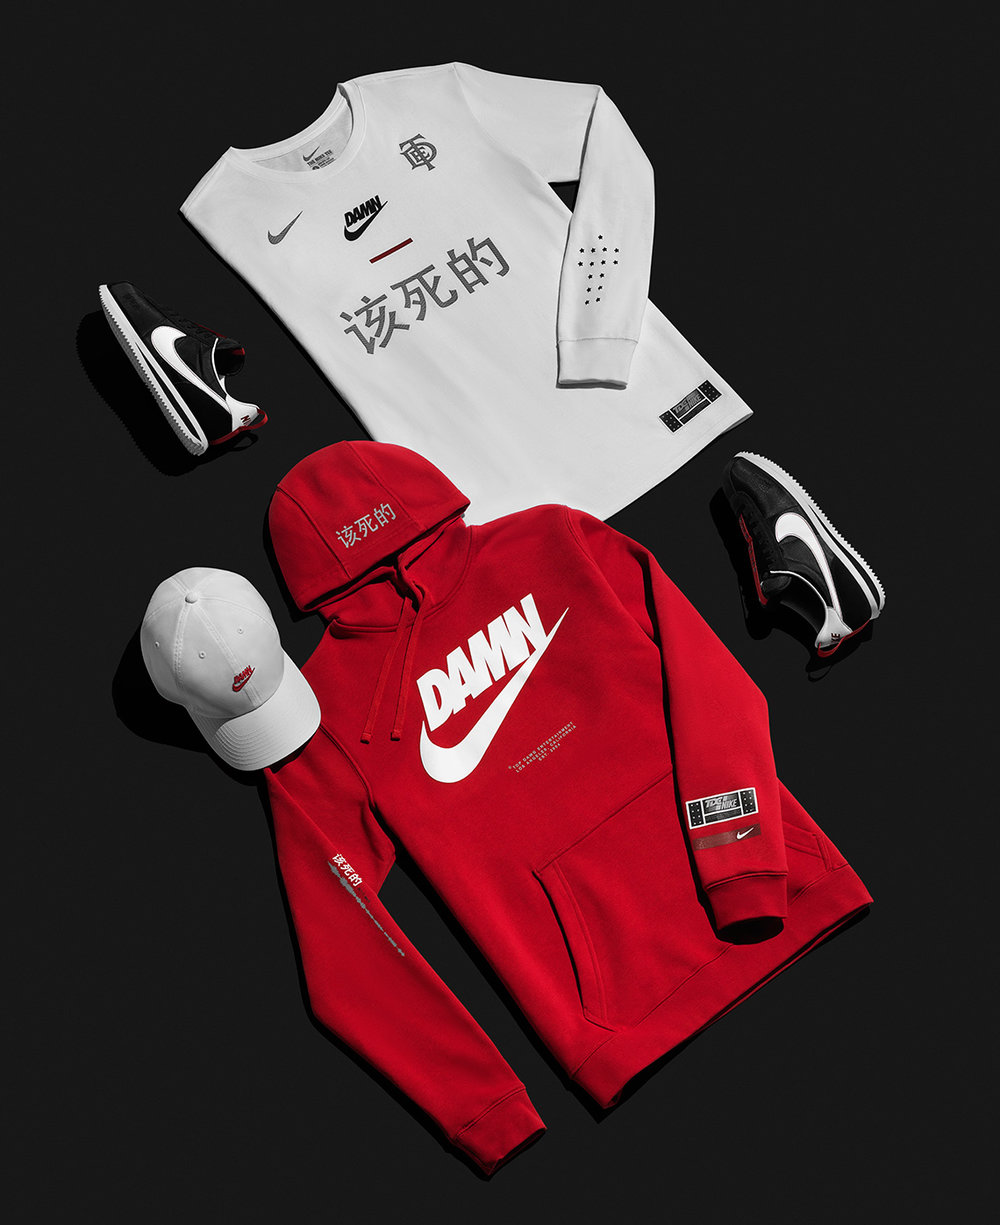 nike-top-dawg-entertainment-cortez-kenny-1-the-championship-tour-release-info-5.jpg